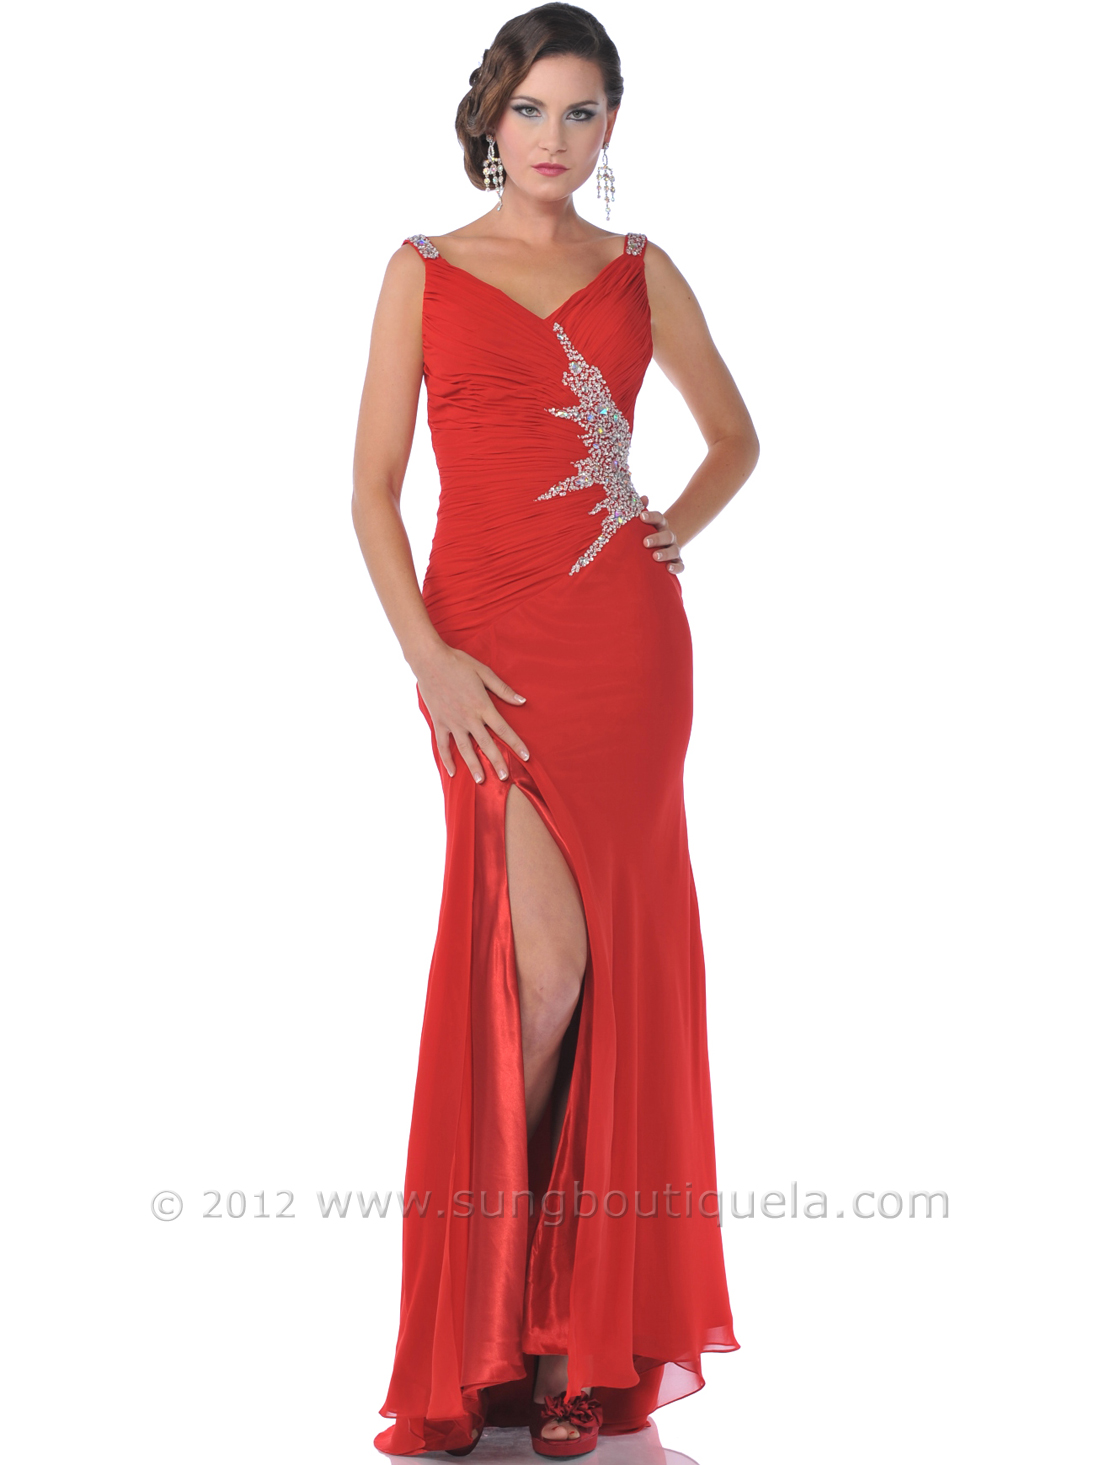 Dress with sparkling jewels and sequins red front view medium